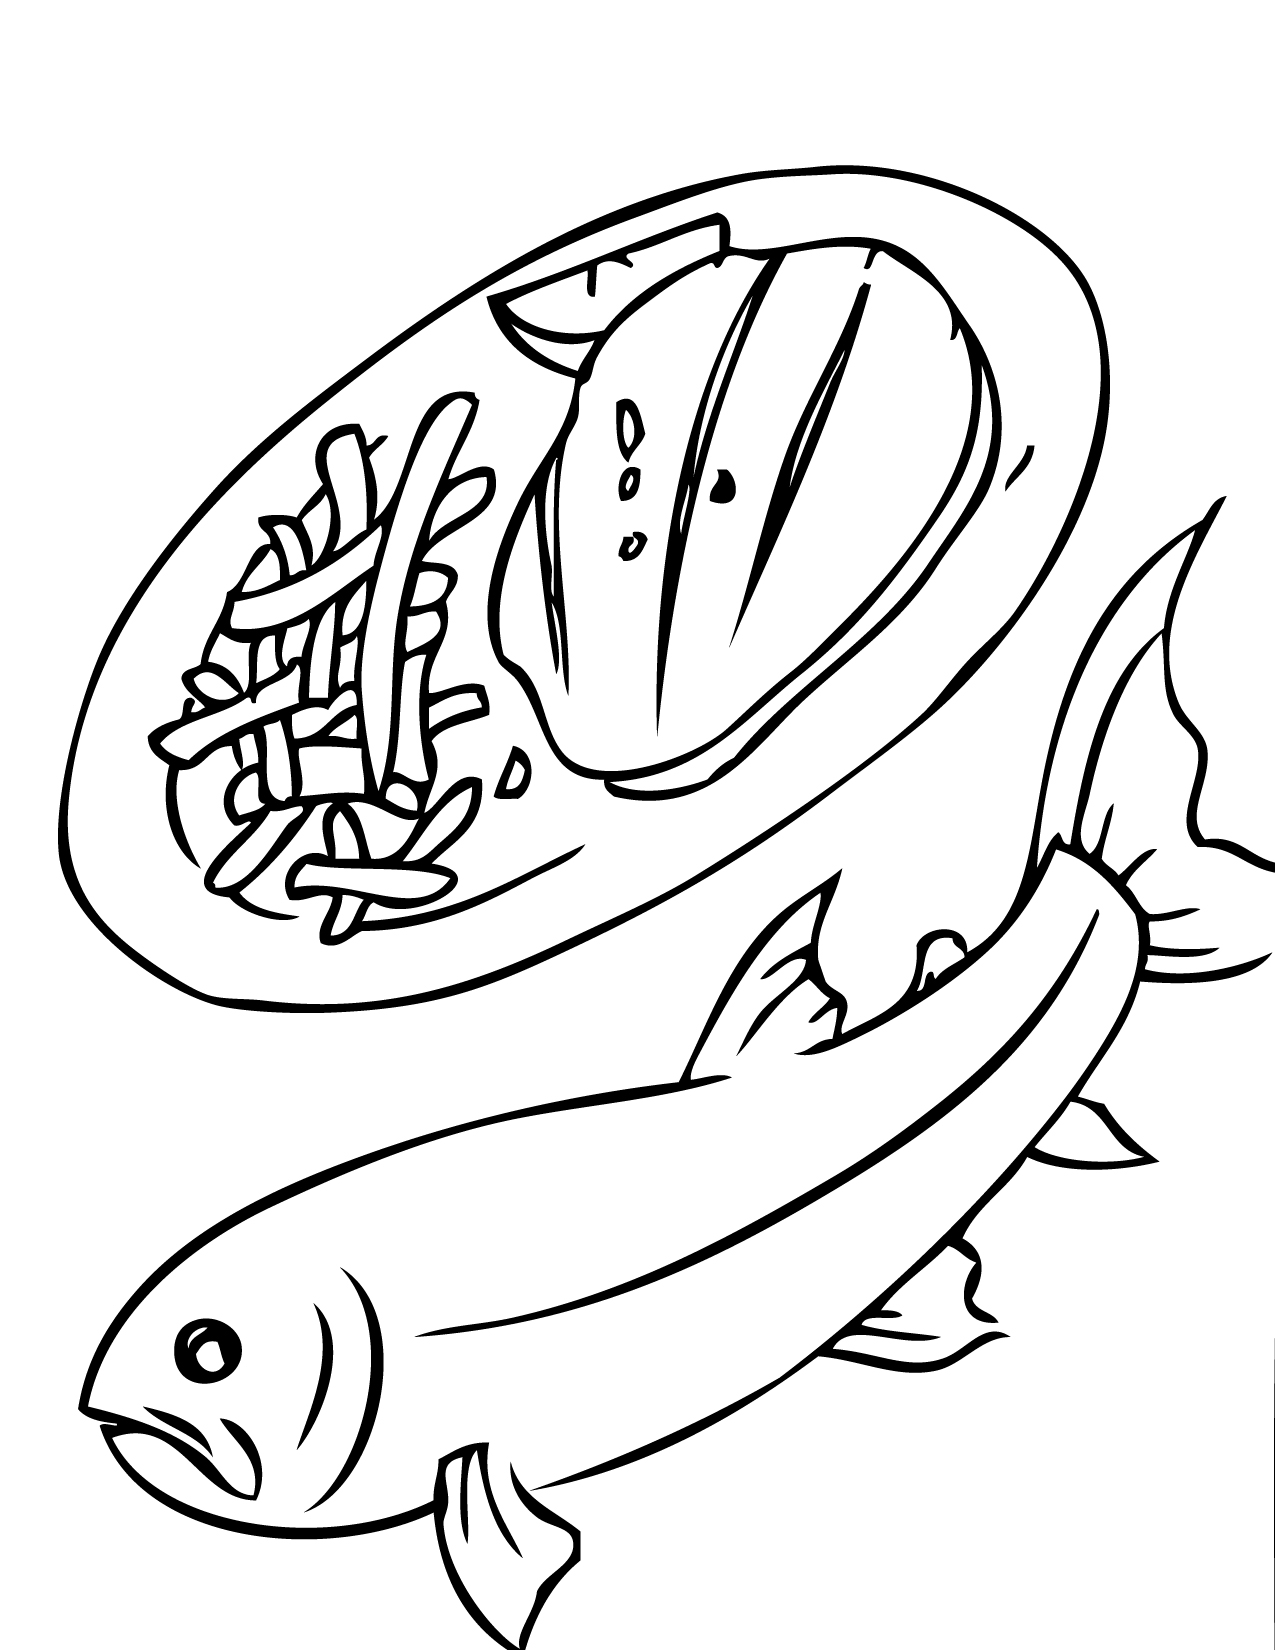 seafood coloring pages - photo#20